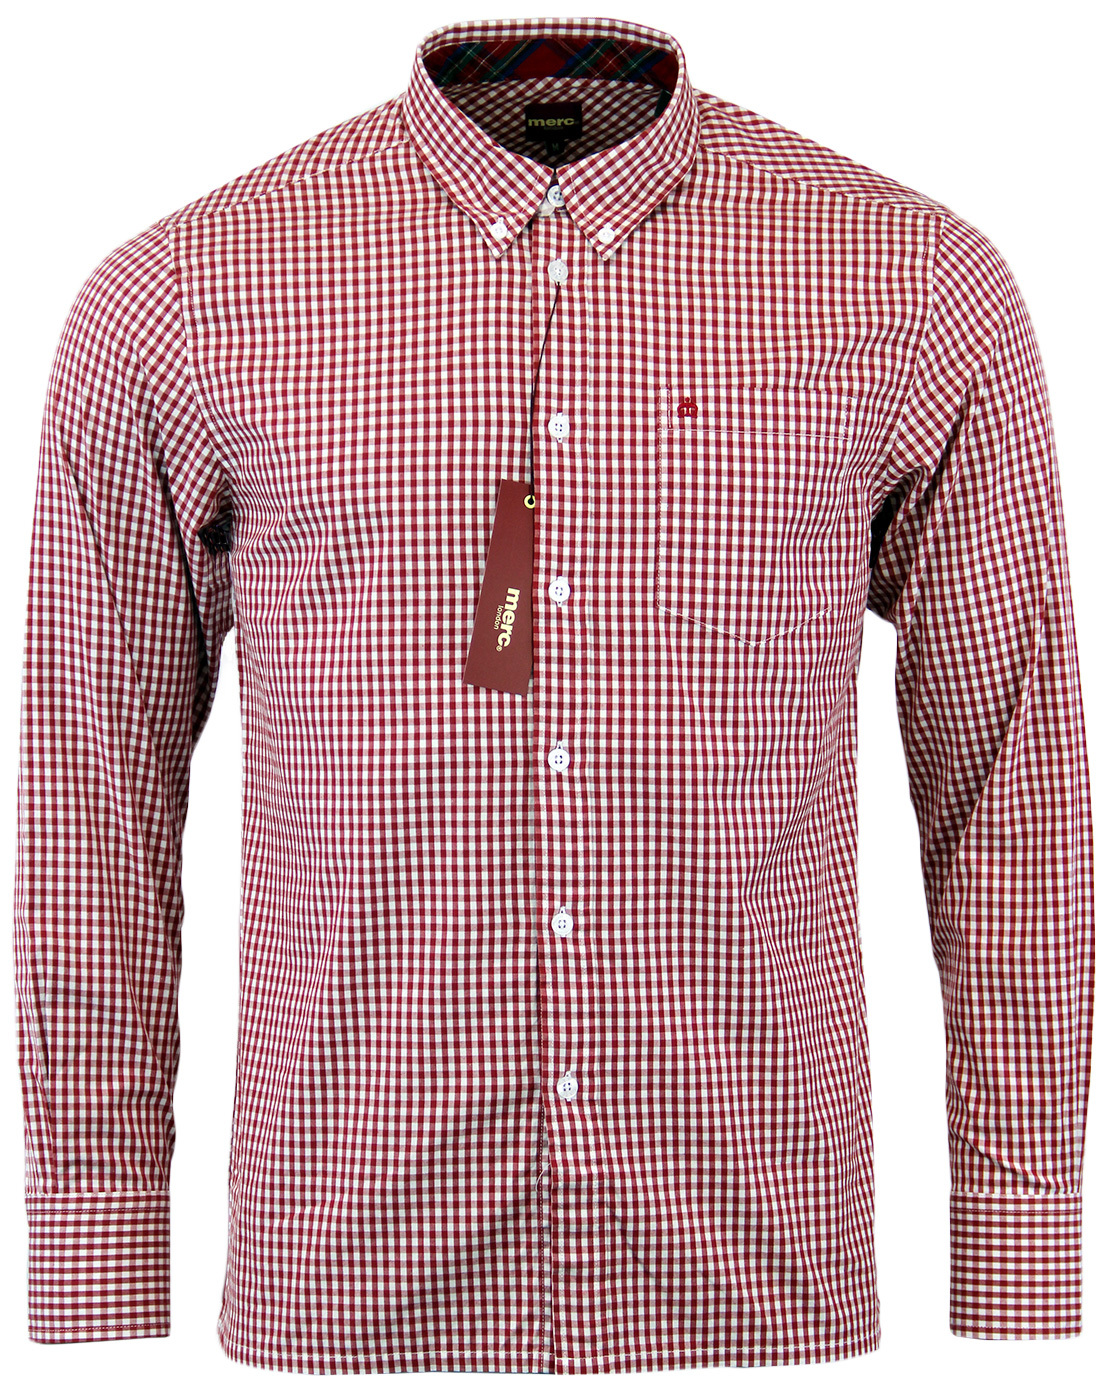 Japster MERC Retro Sixties Mod Gingham Shirt (R)